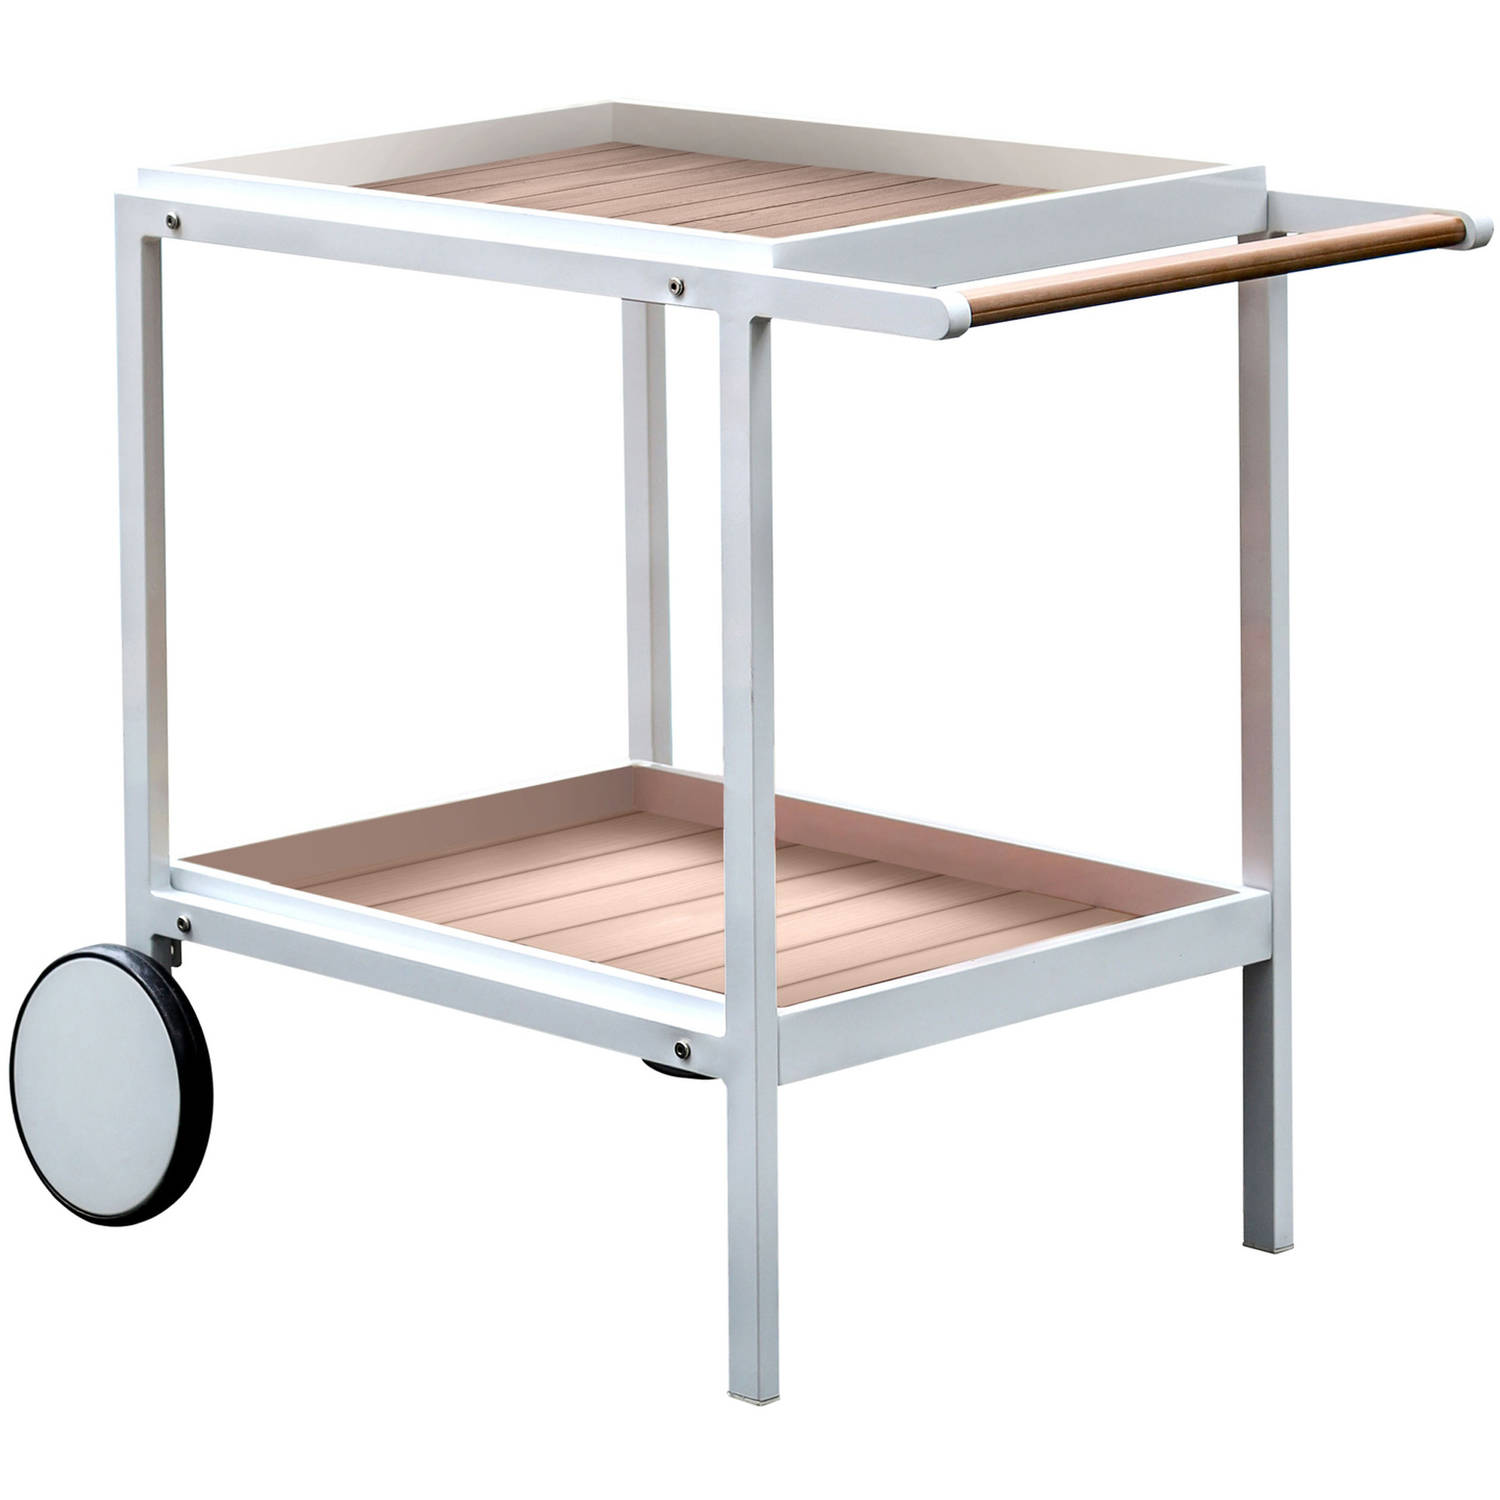 Furniture of America Leland Patio Serving Cart, Oak and White